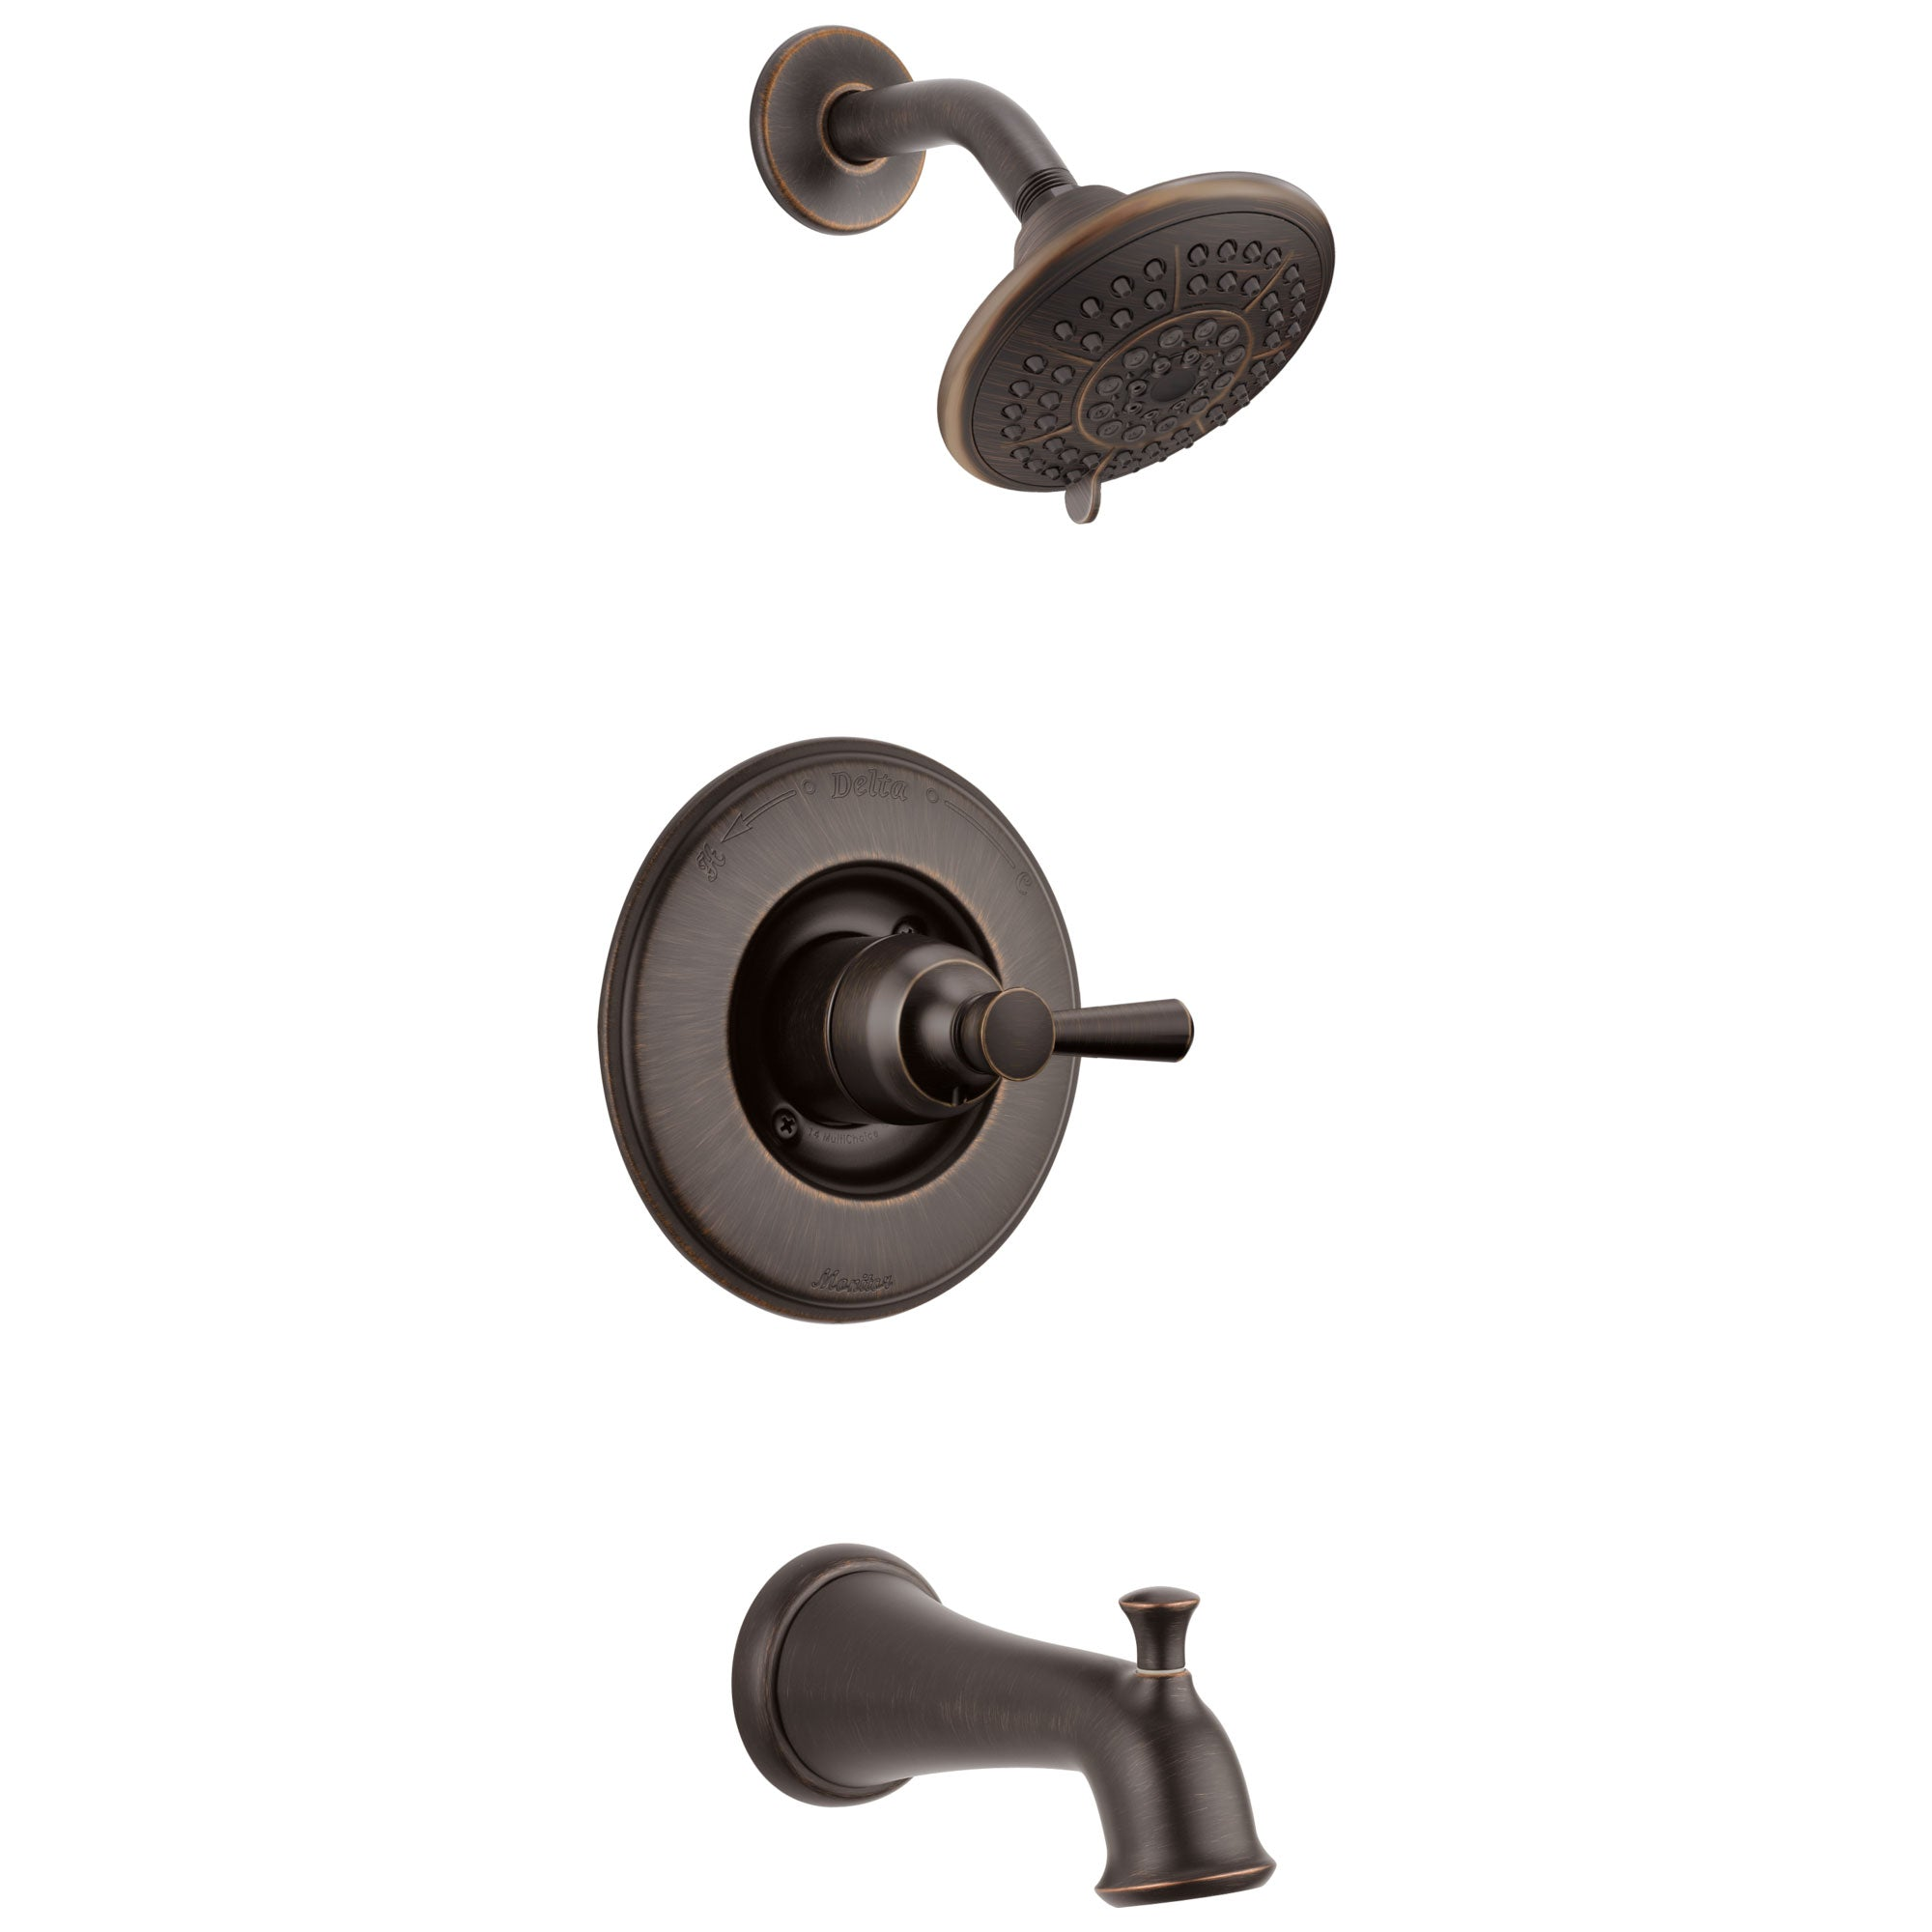 Delta Linden Collection Venetian Bronze Monitor 14 Contemporary Shower Faucet, Control, and Tub Spout Includes Trim Kit Rough Valve without Stops D2371V